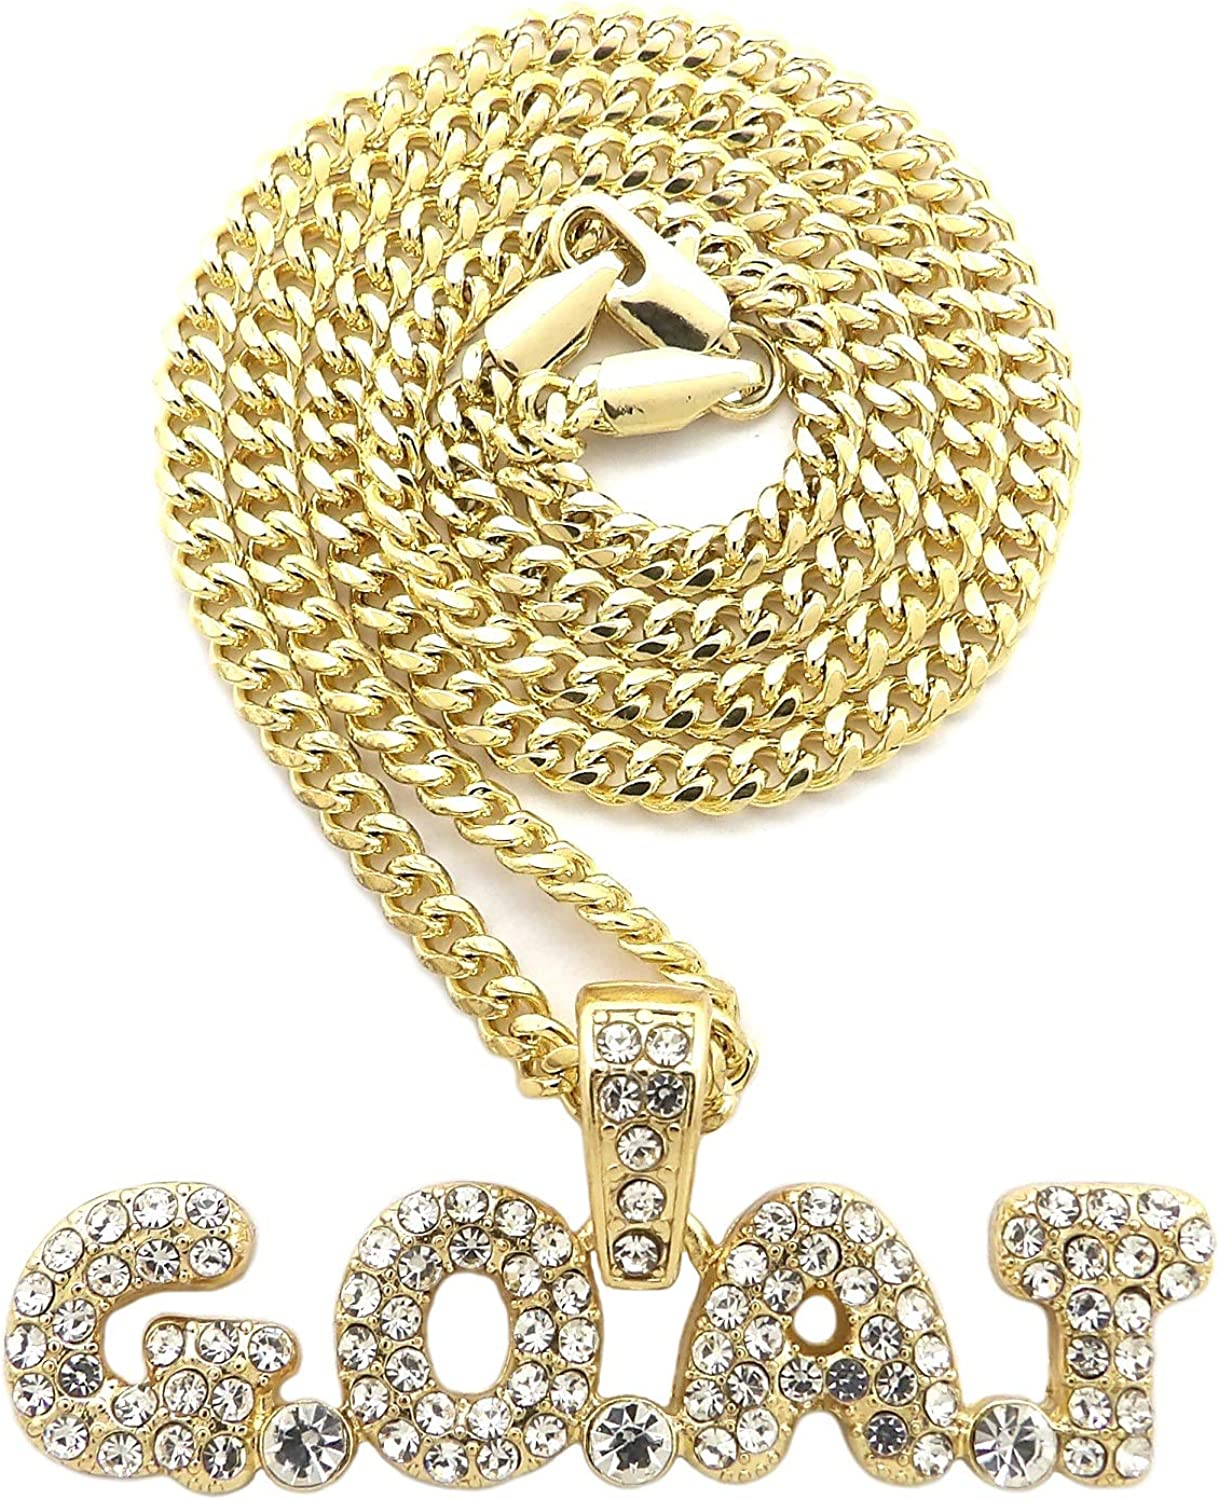 Fashion 21 Hip Hop G.O.A.T Pendant 20, 24 inches Various Chain Necklace in Gold, Silver Tone